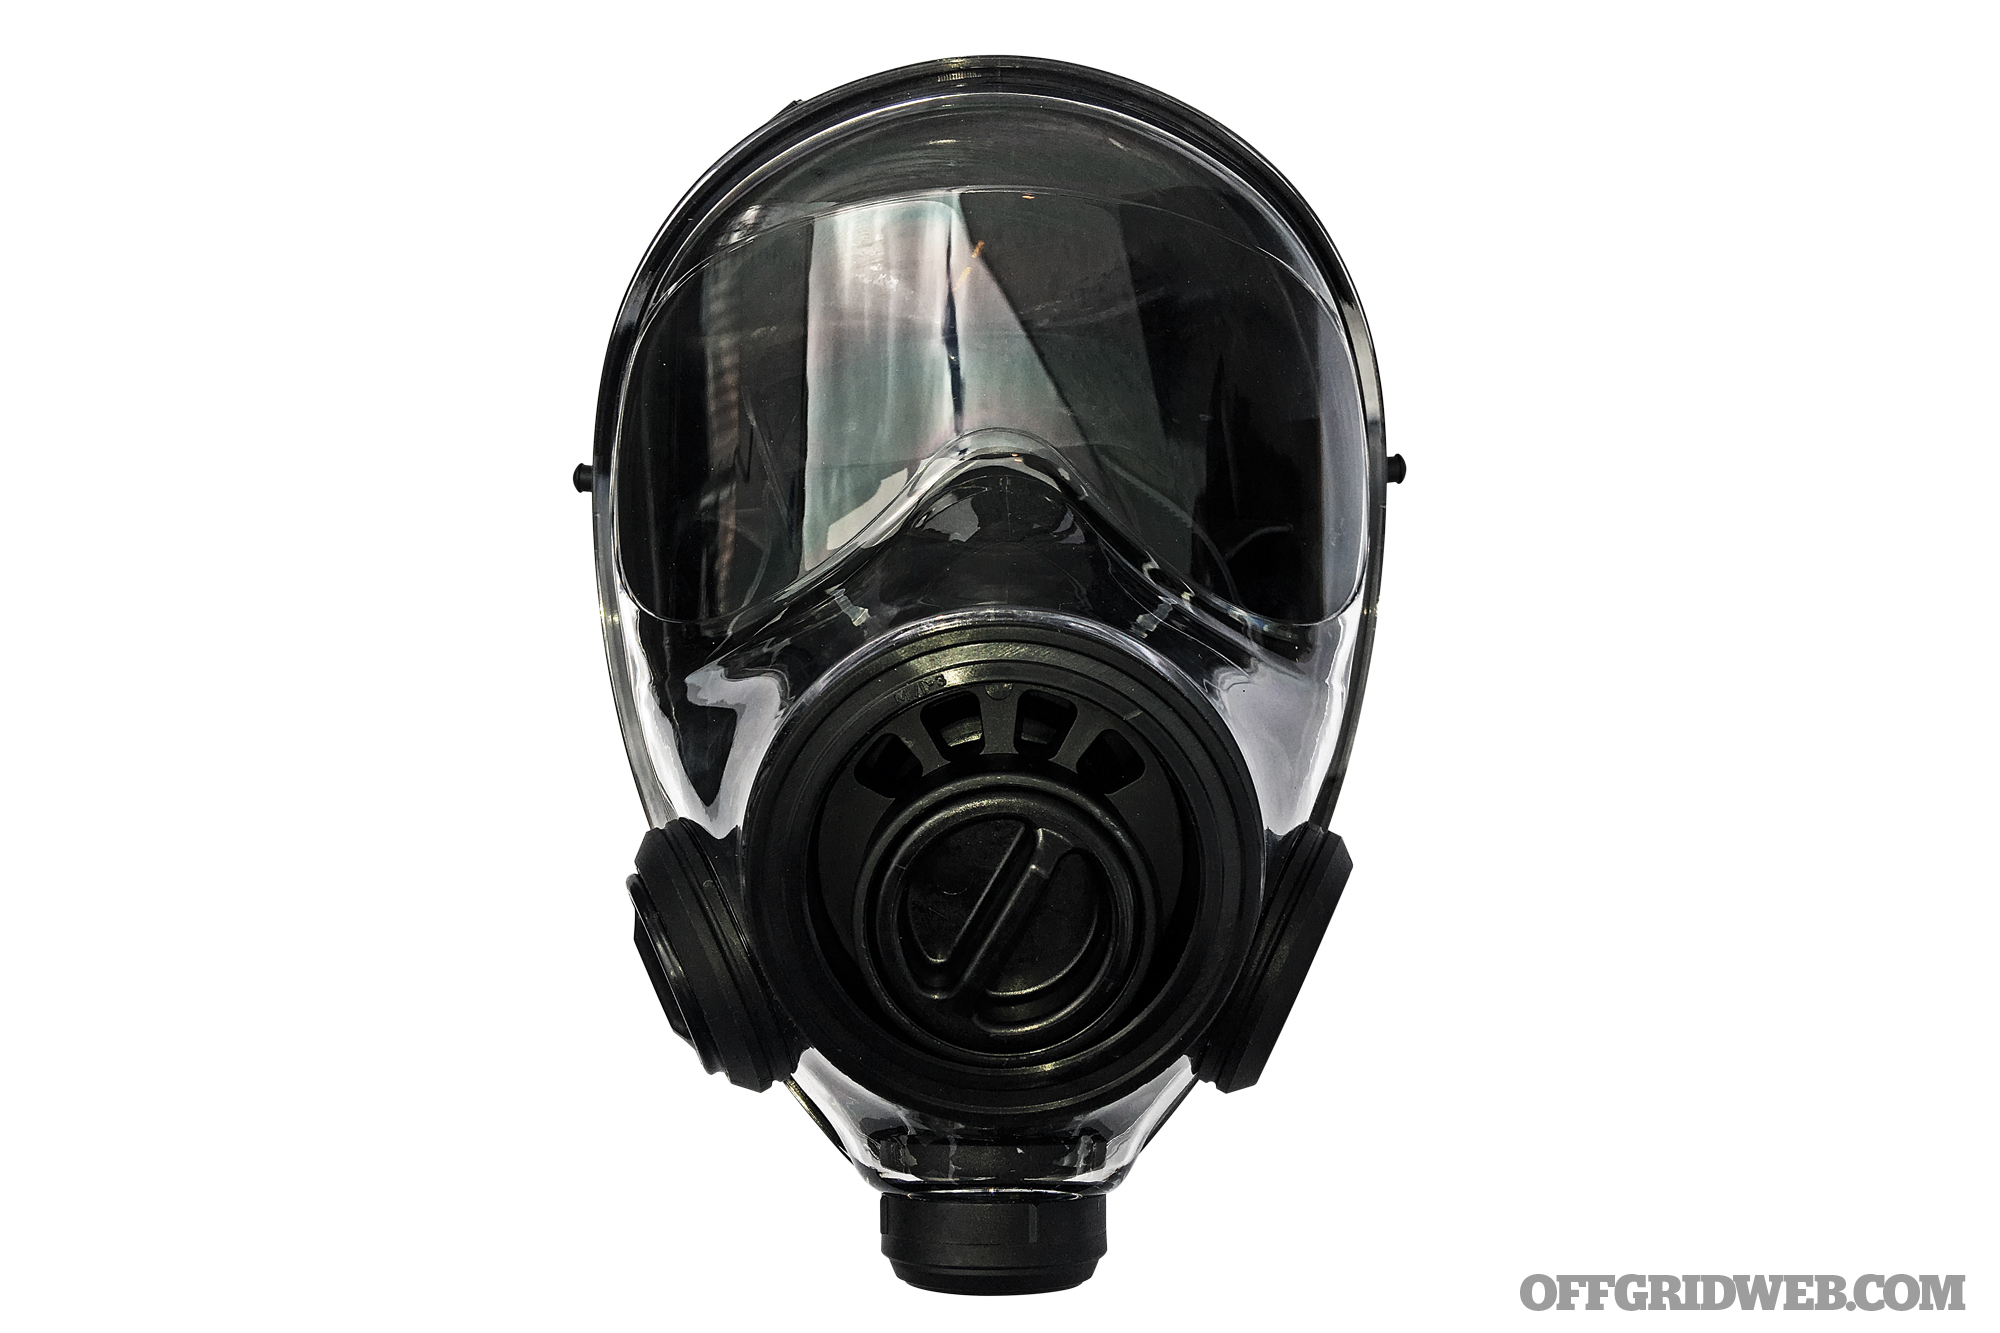 gsr gas mask size guide